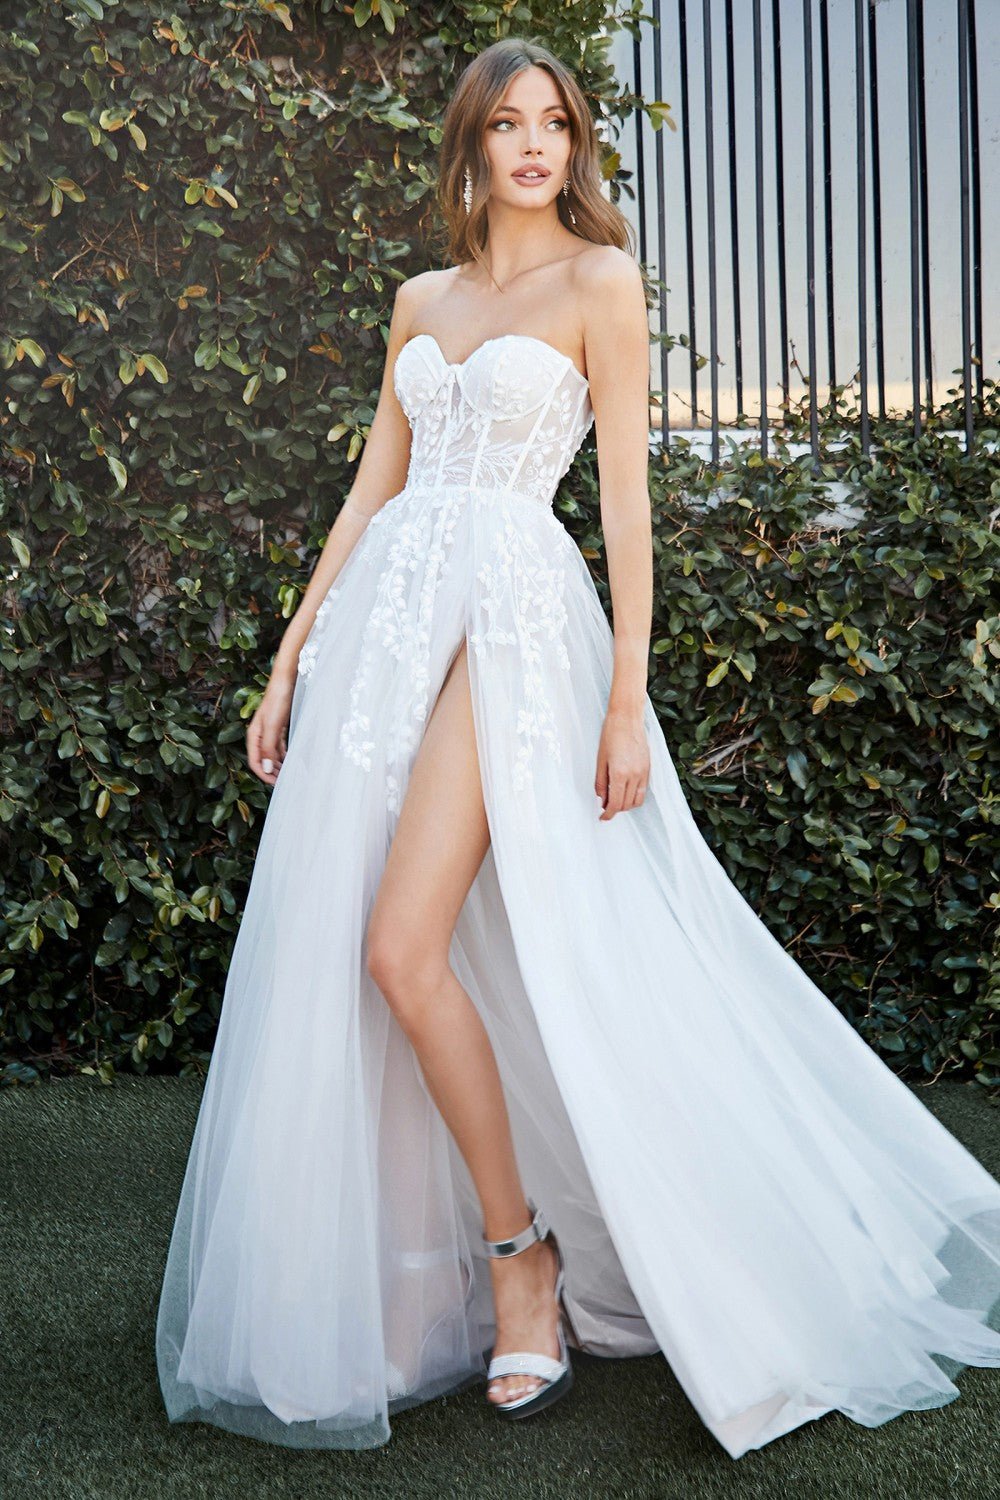 CD CB065W - Strapless A Line Wedding Gown with Floral Applique Corset Bodice & Leg Slit